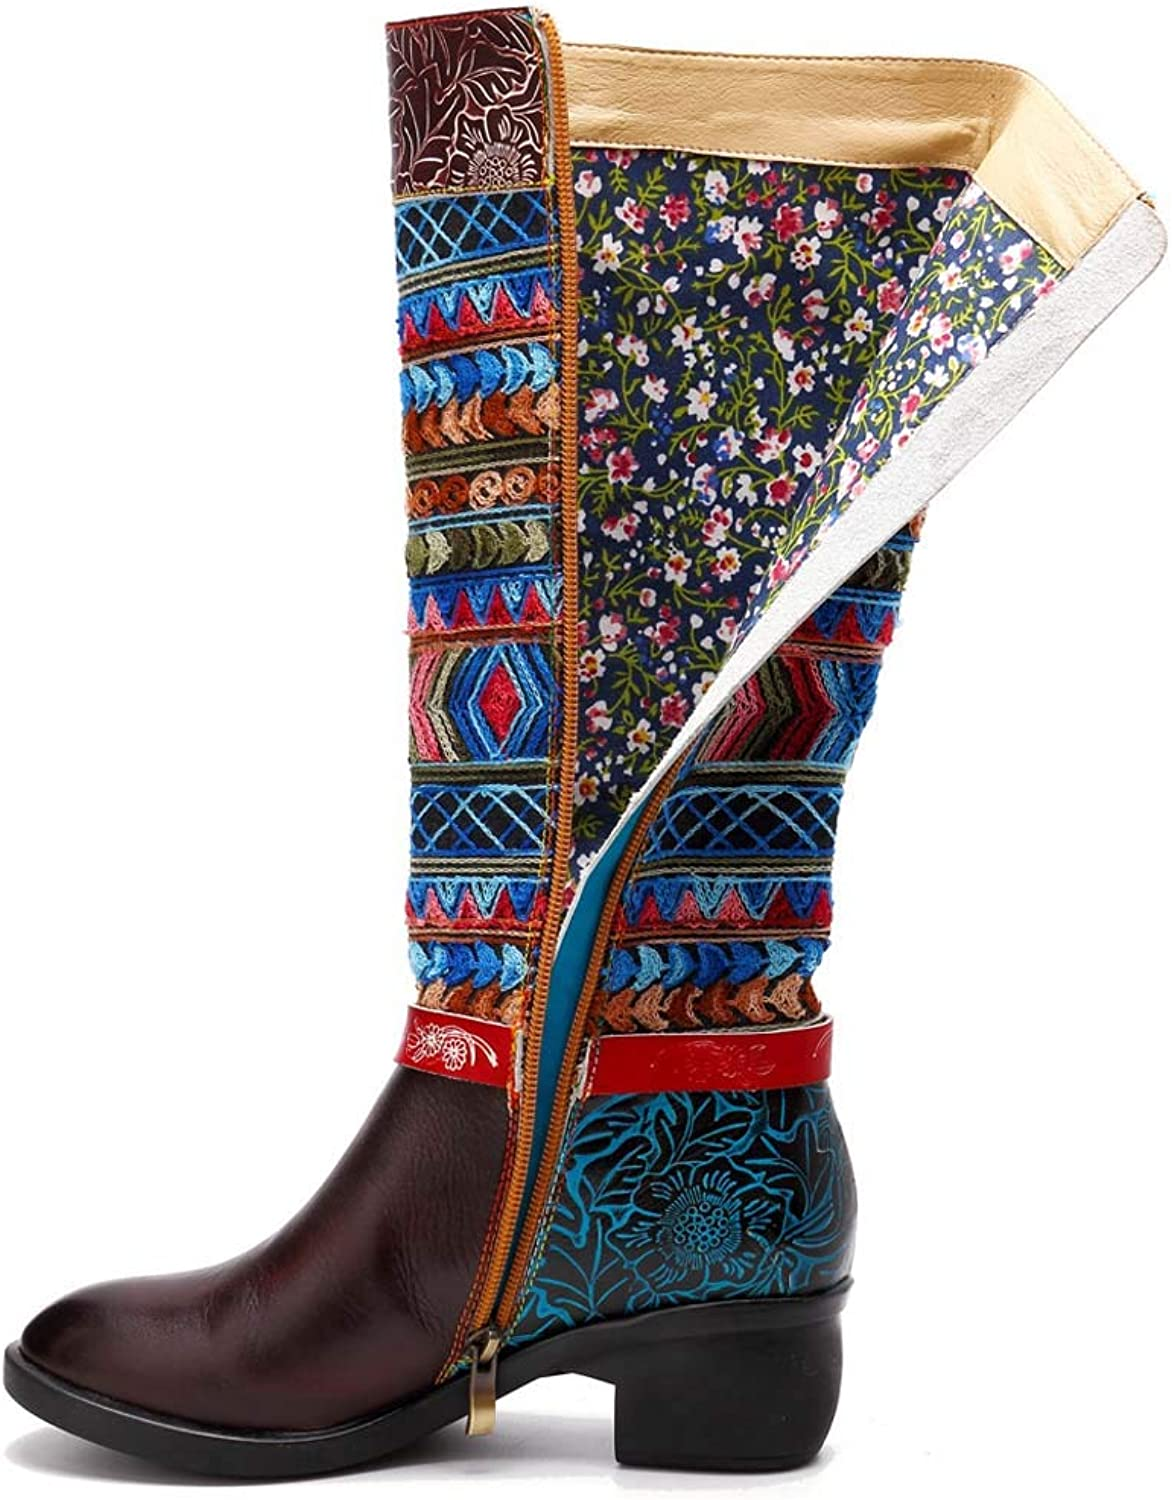 Women's Casual Vintage Handmade Genuine Leather Knee Boots, Comfortable Breathable Side Zipper High Boots